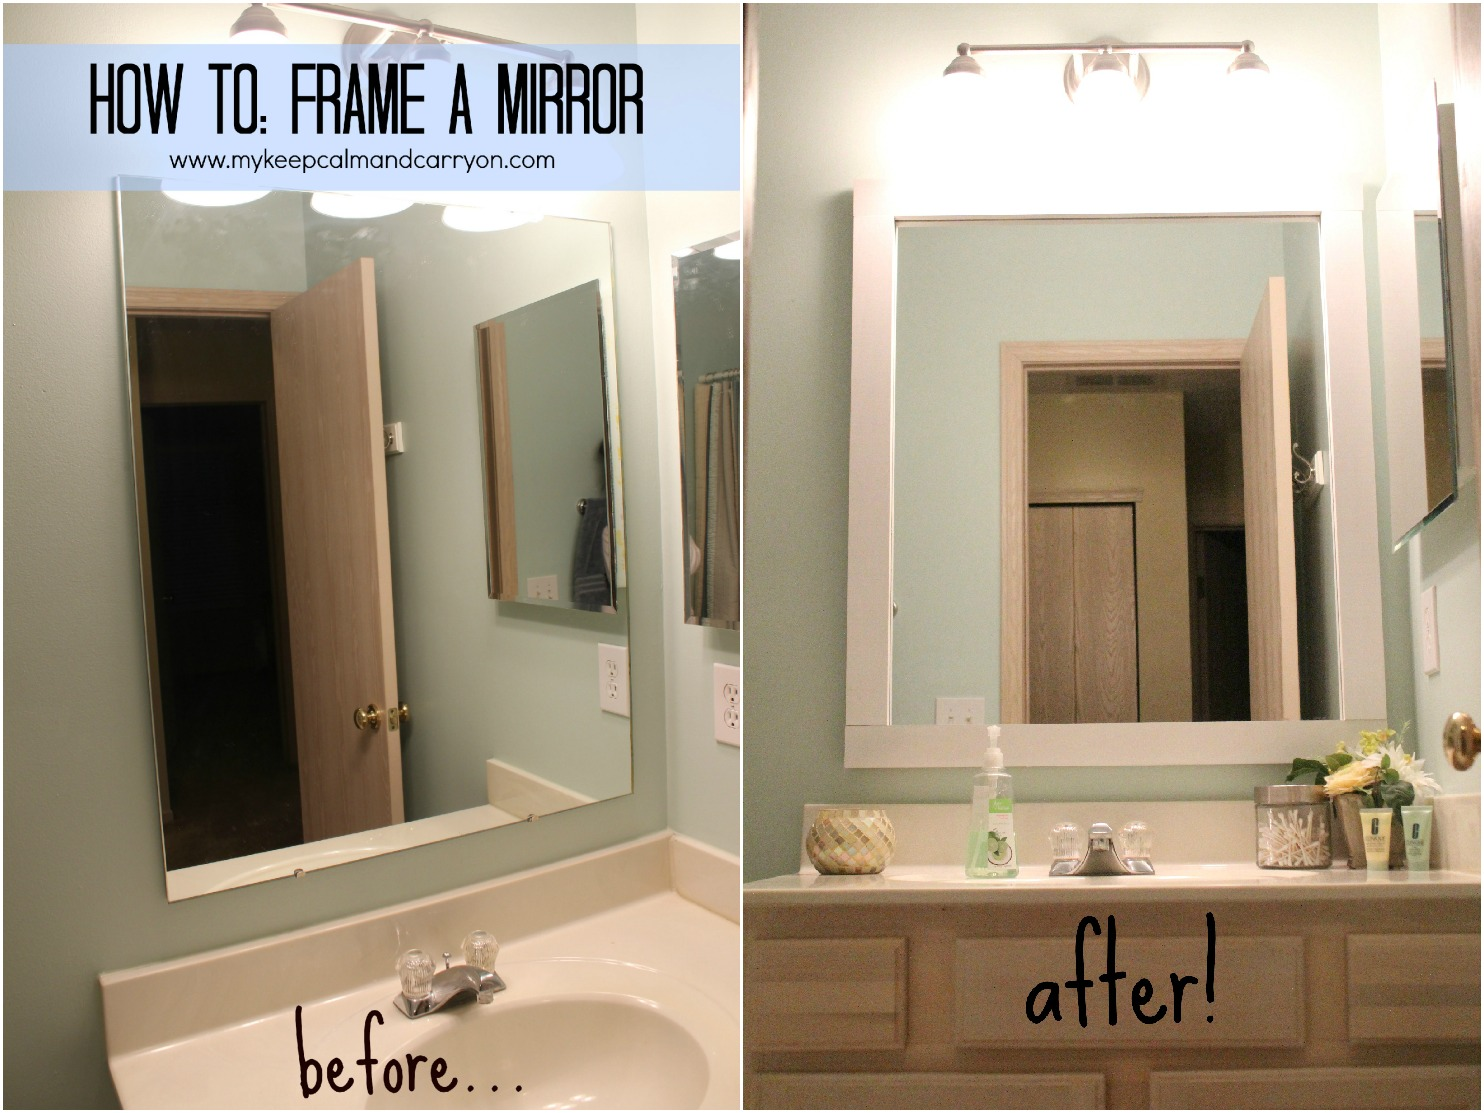 keep calm and carry on: spd: how to frame a mirror